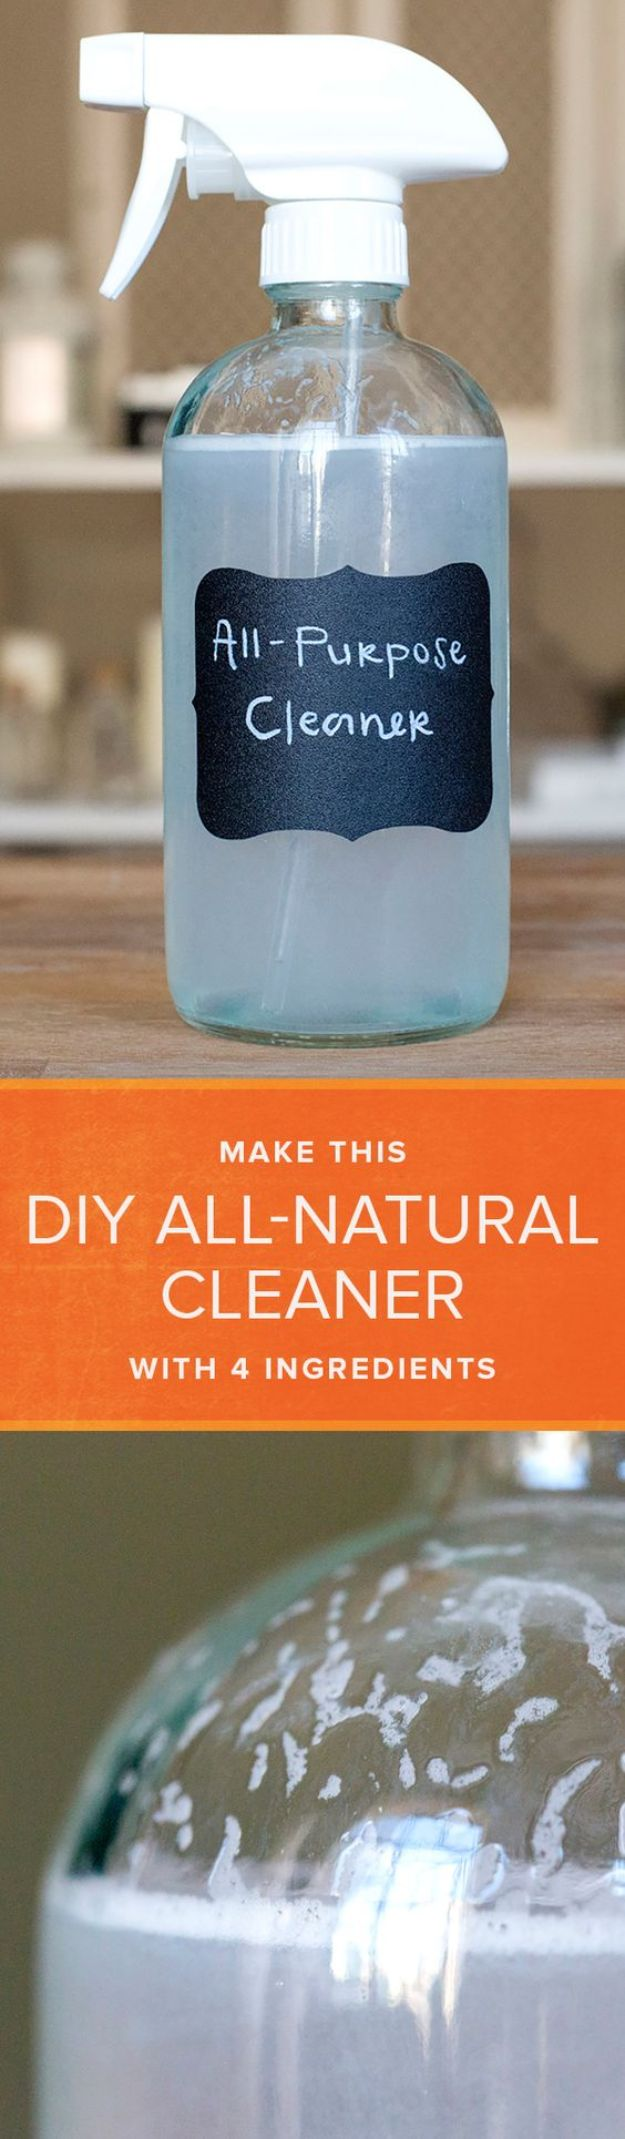 40 Homemade Cleaning Product Recipes